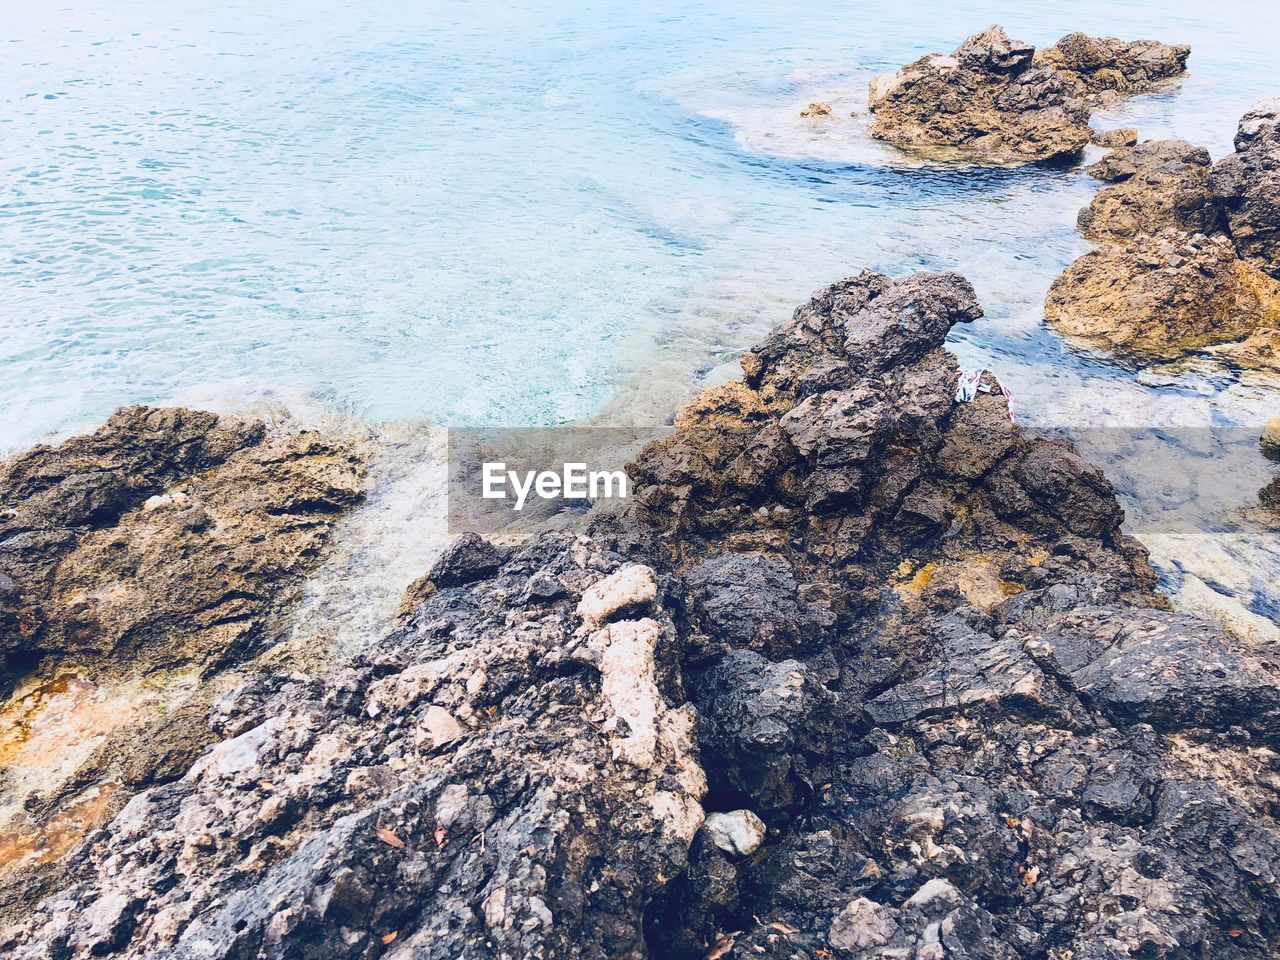 rock, solid, water, rock - object, sea, beauty in nature, land, rock formation, beach, tranquility, nature, day, no people, high angle view, tranquil scene, scenics - nature, outdoors, idyllic, non-urban scene, rocky coastline, eroded